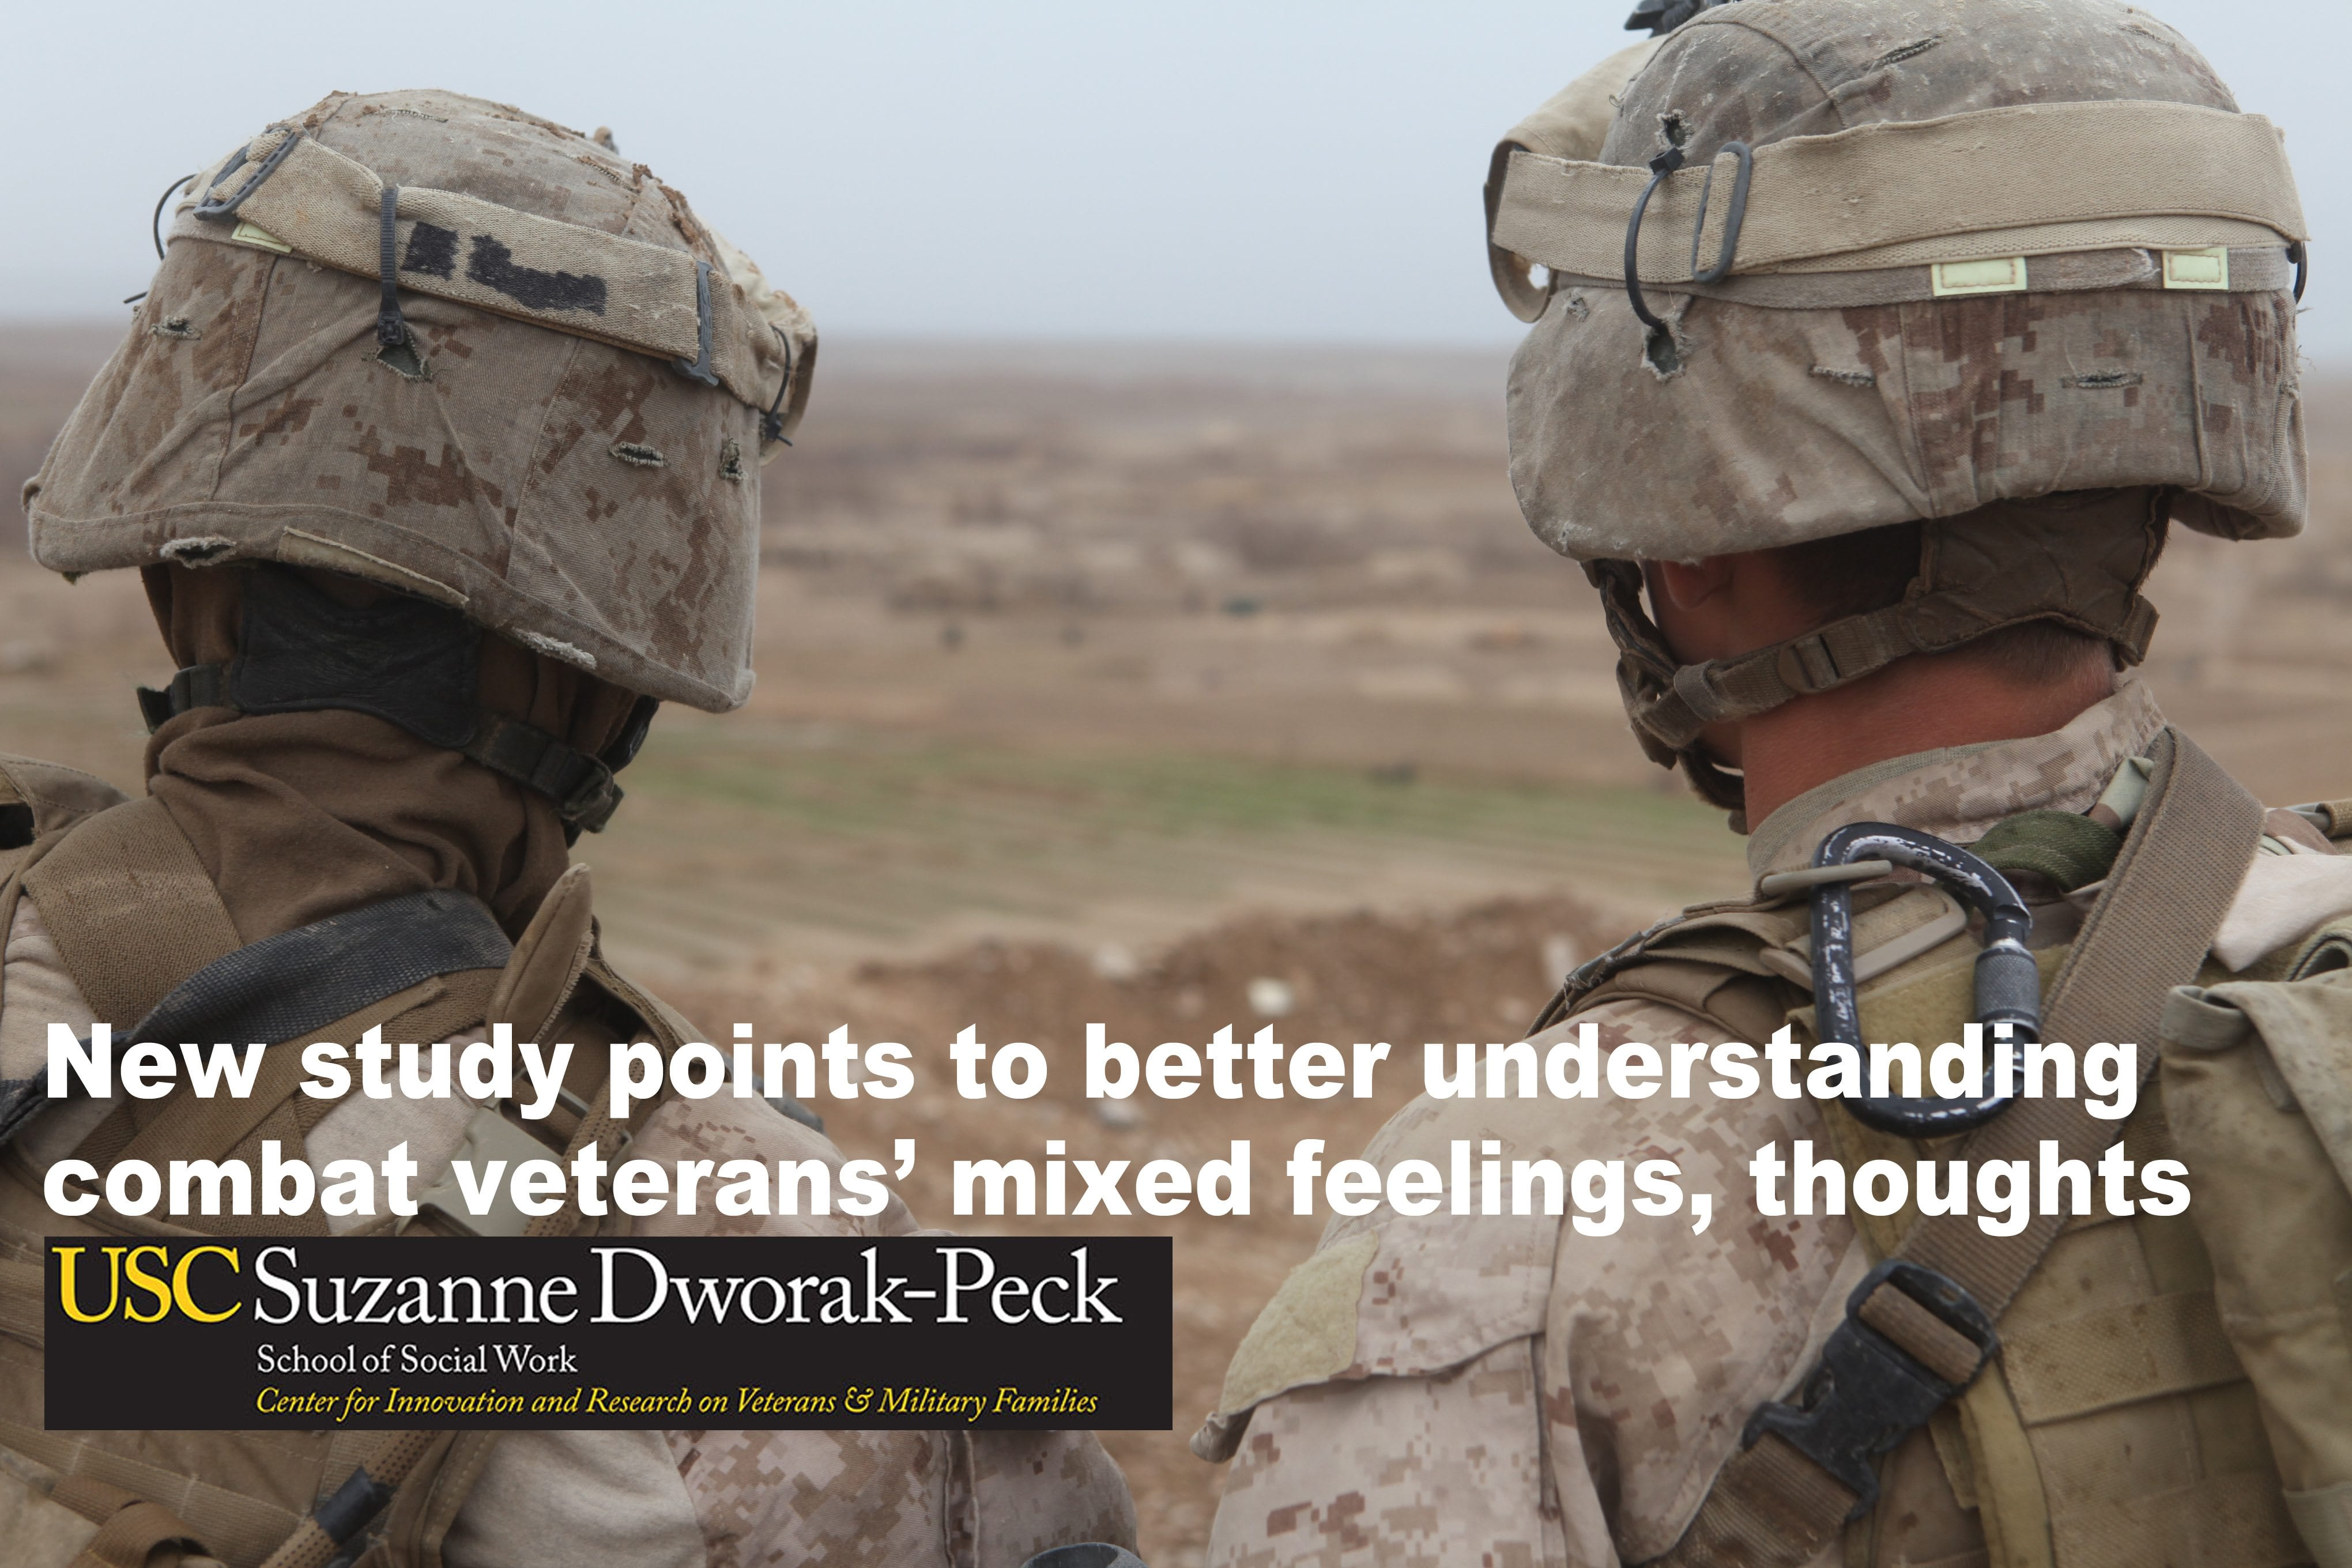 Image New study points to better understanding combat veterans' mixed feelings, thoughts